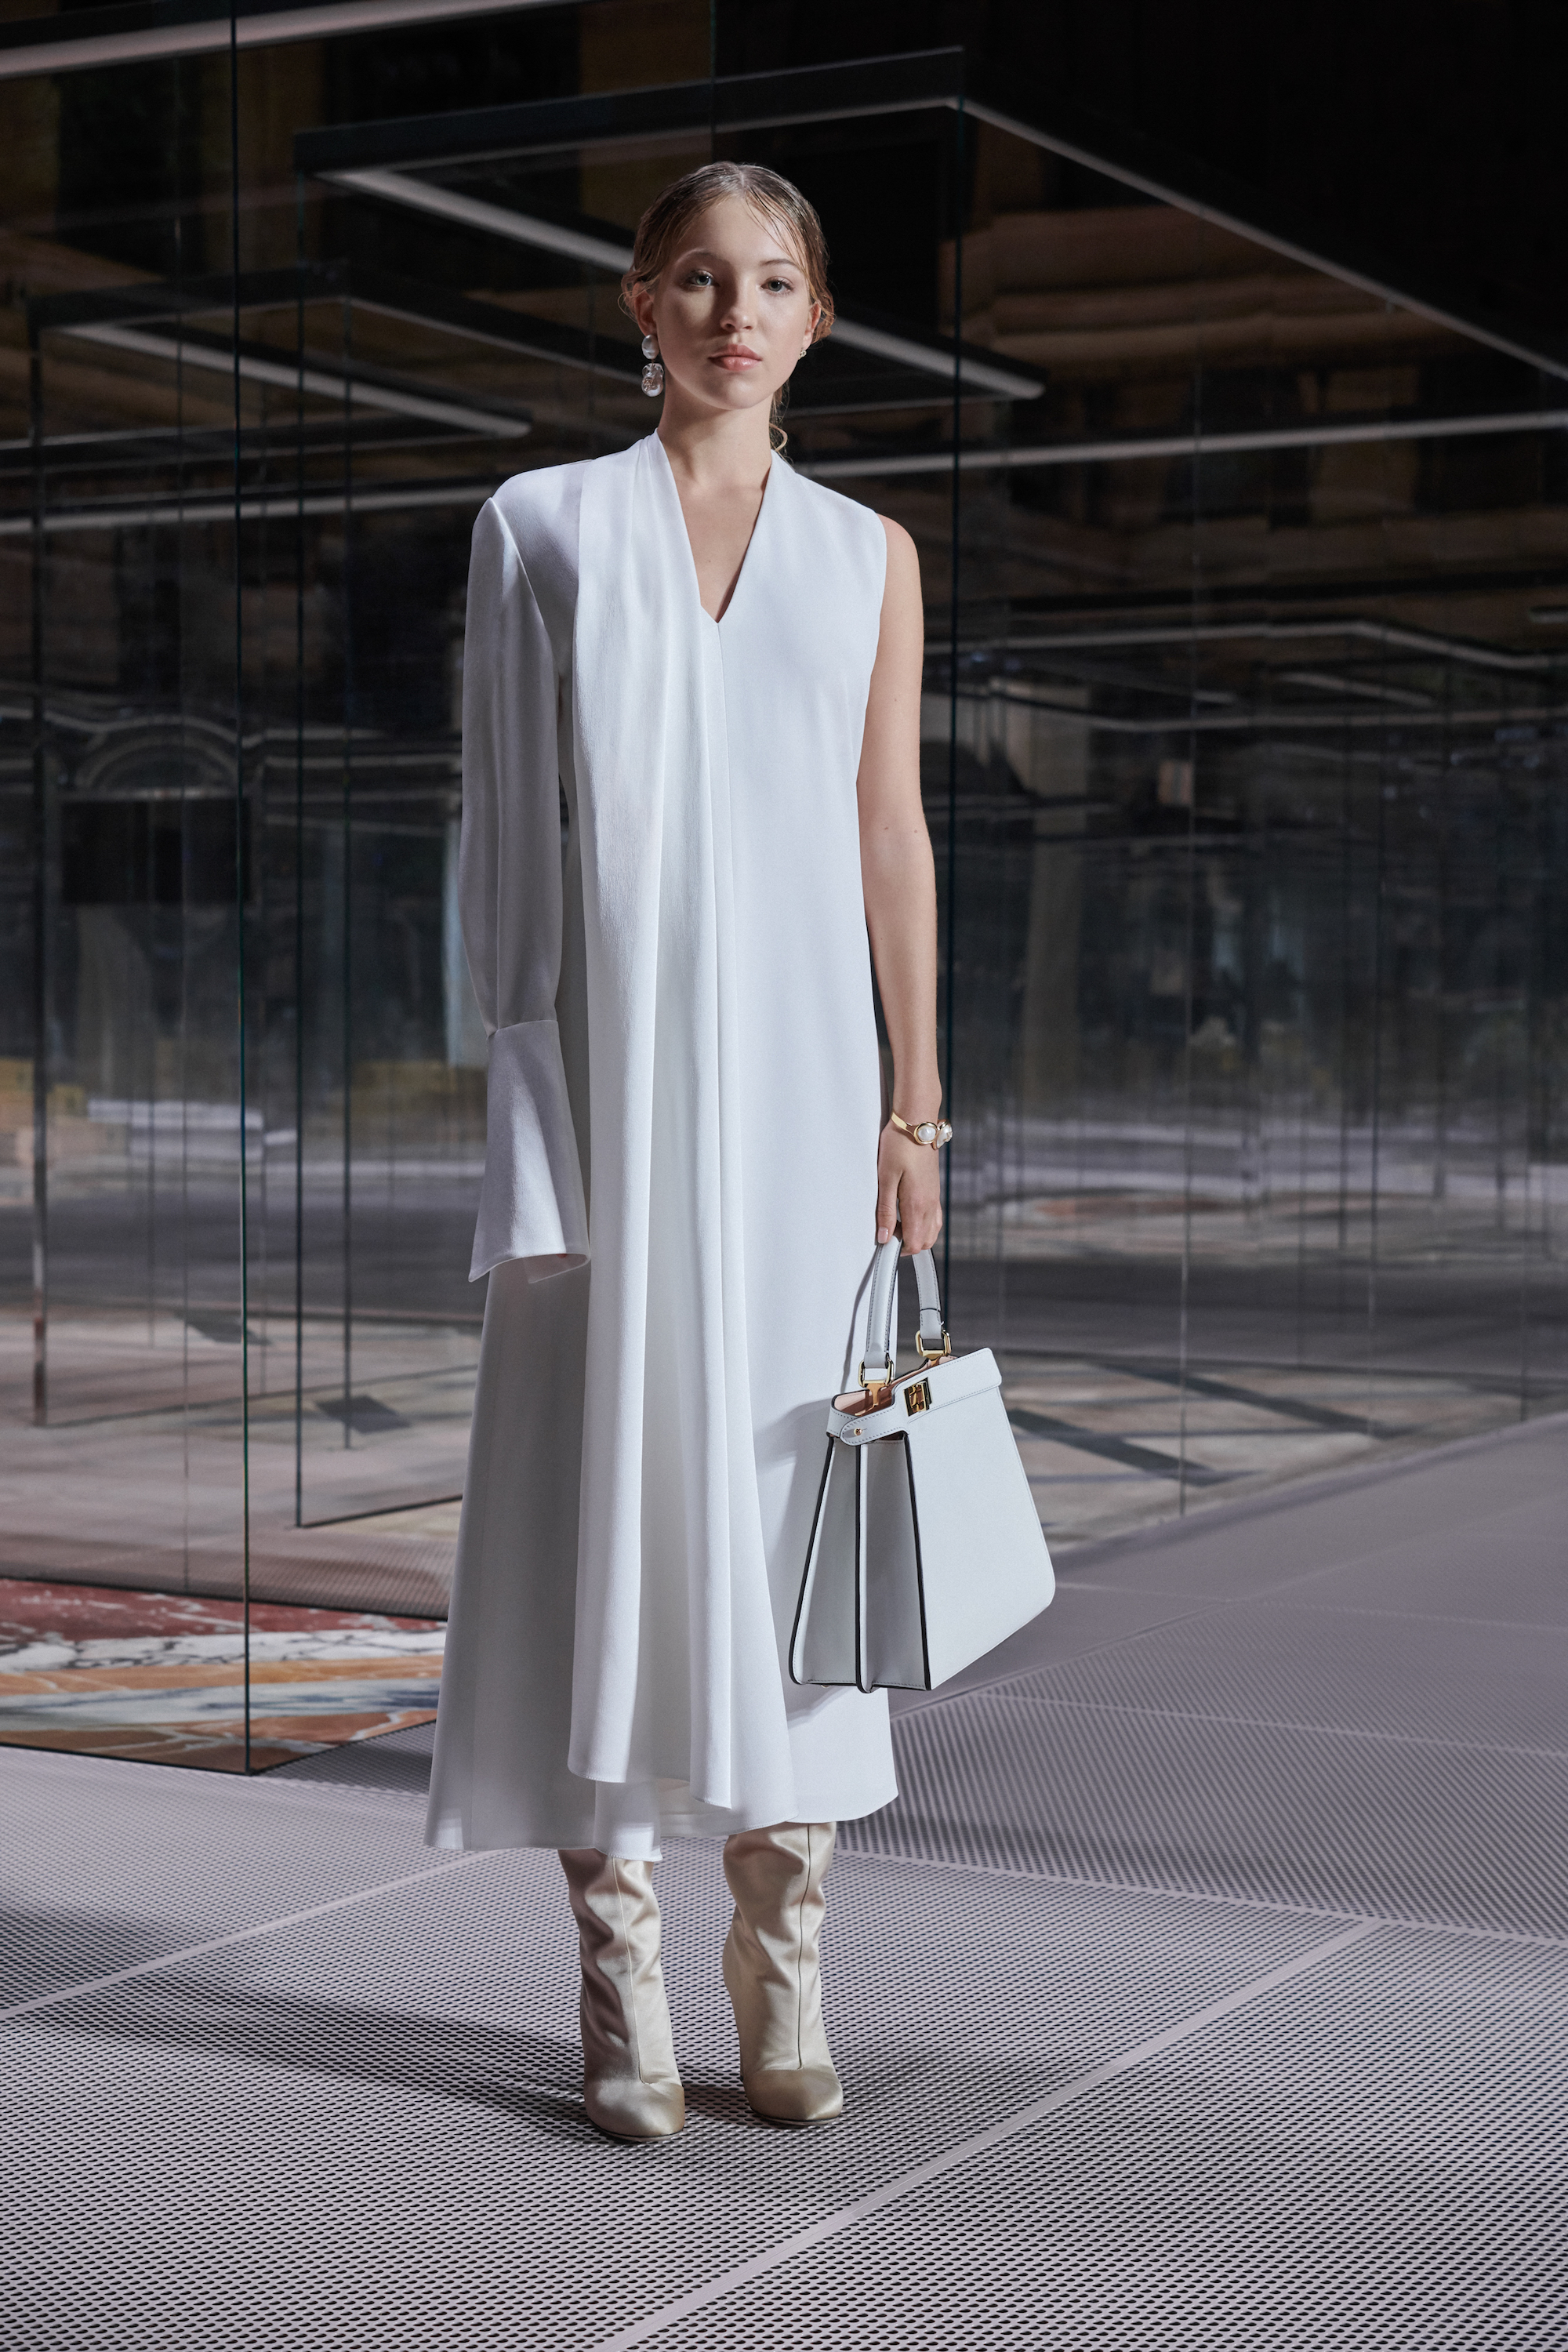 Fendi limited edition capsule collection Lila Grace Moss white dress